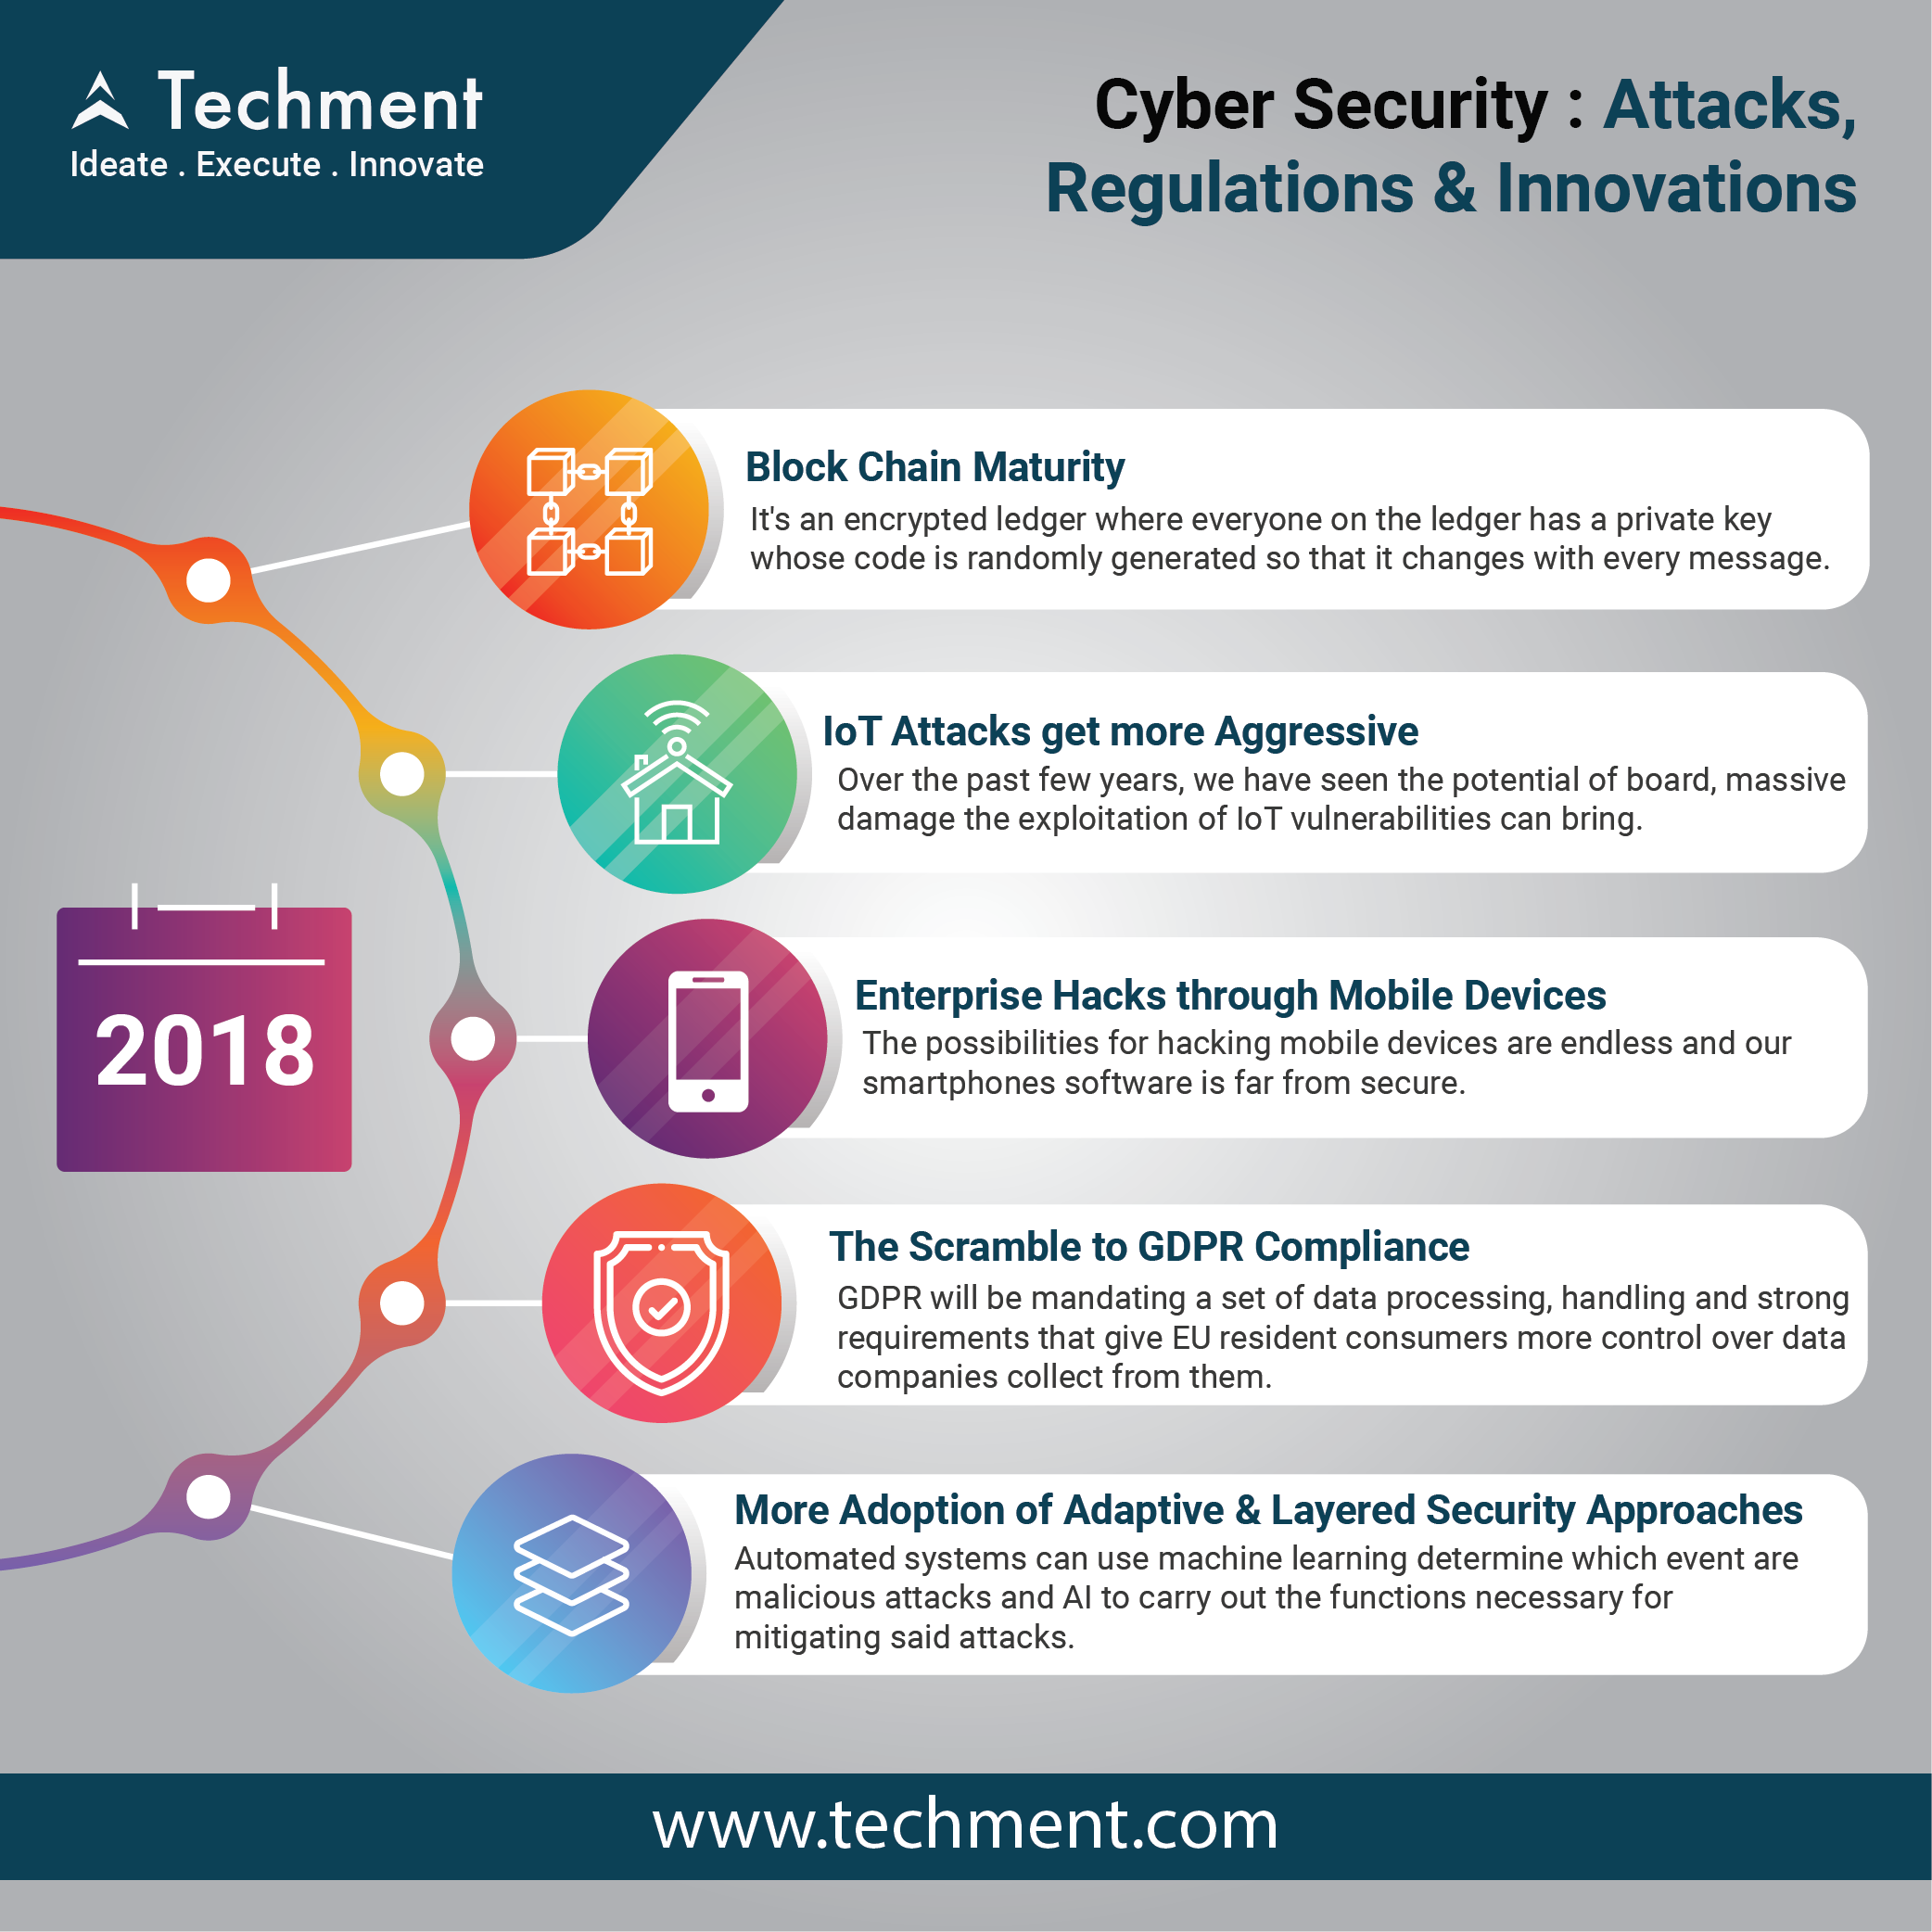 Pin by Techment Technology on Cyber Security | App development